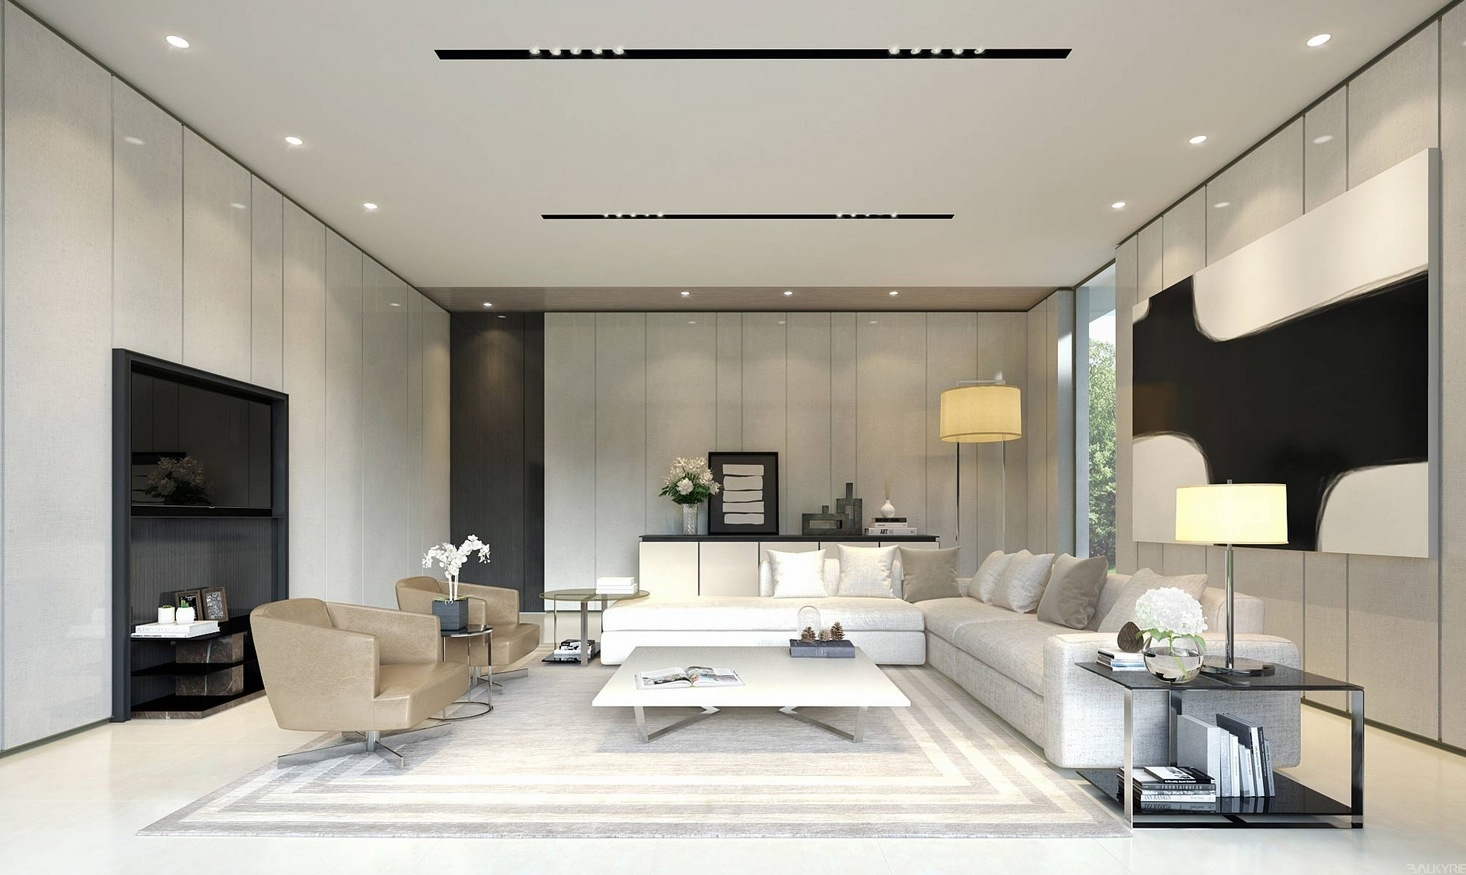 Luxury Living Room Design Spacious Living Room Designs Combined With Modern And Minimalist